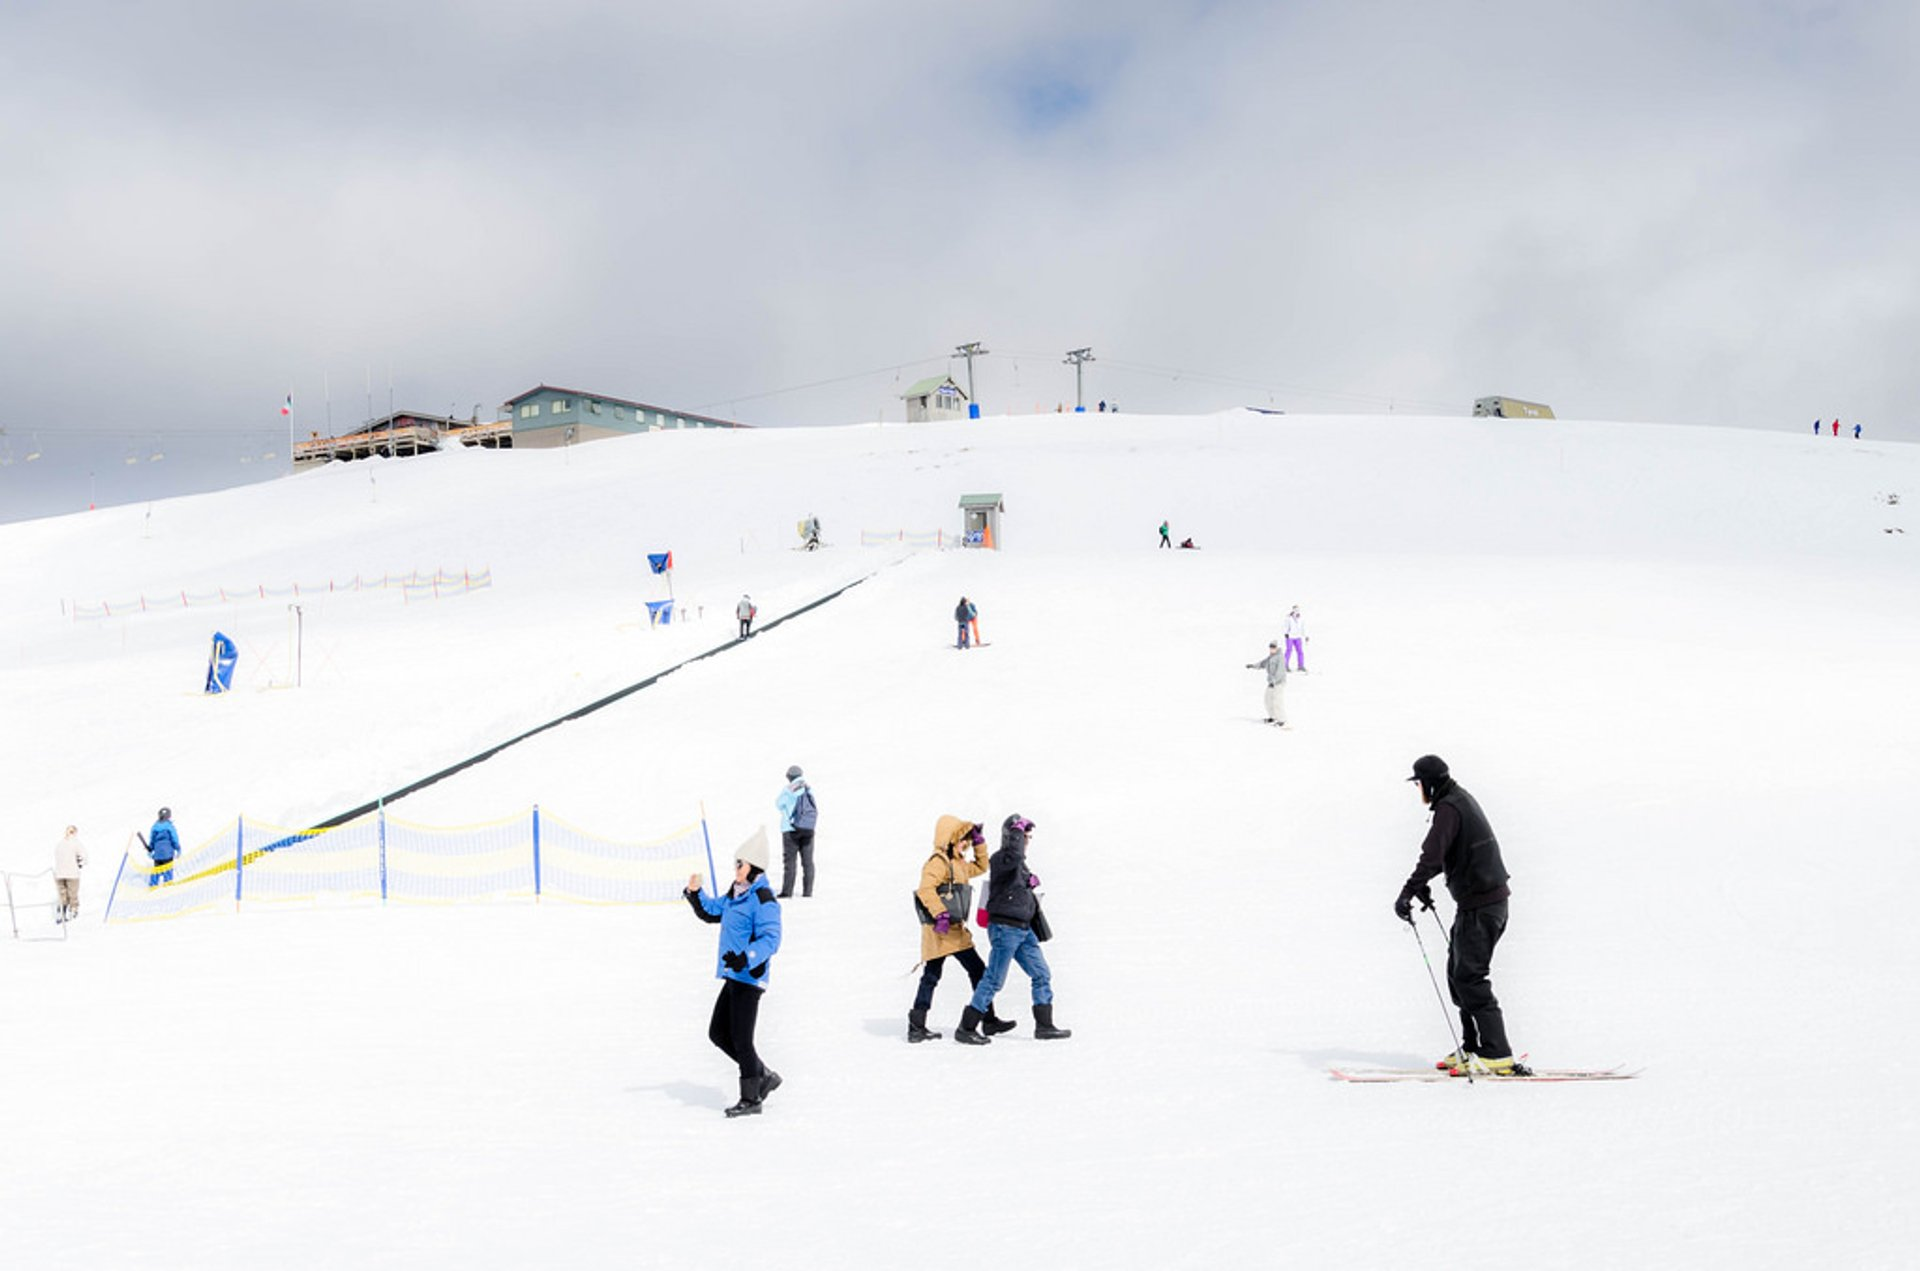 Skiing in Victoria - Best Season 2019